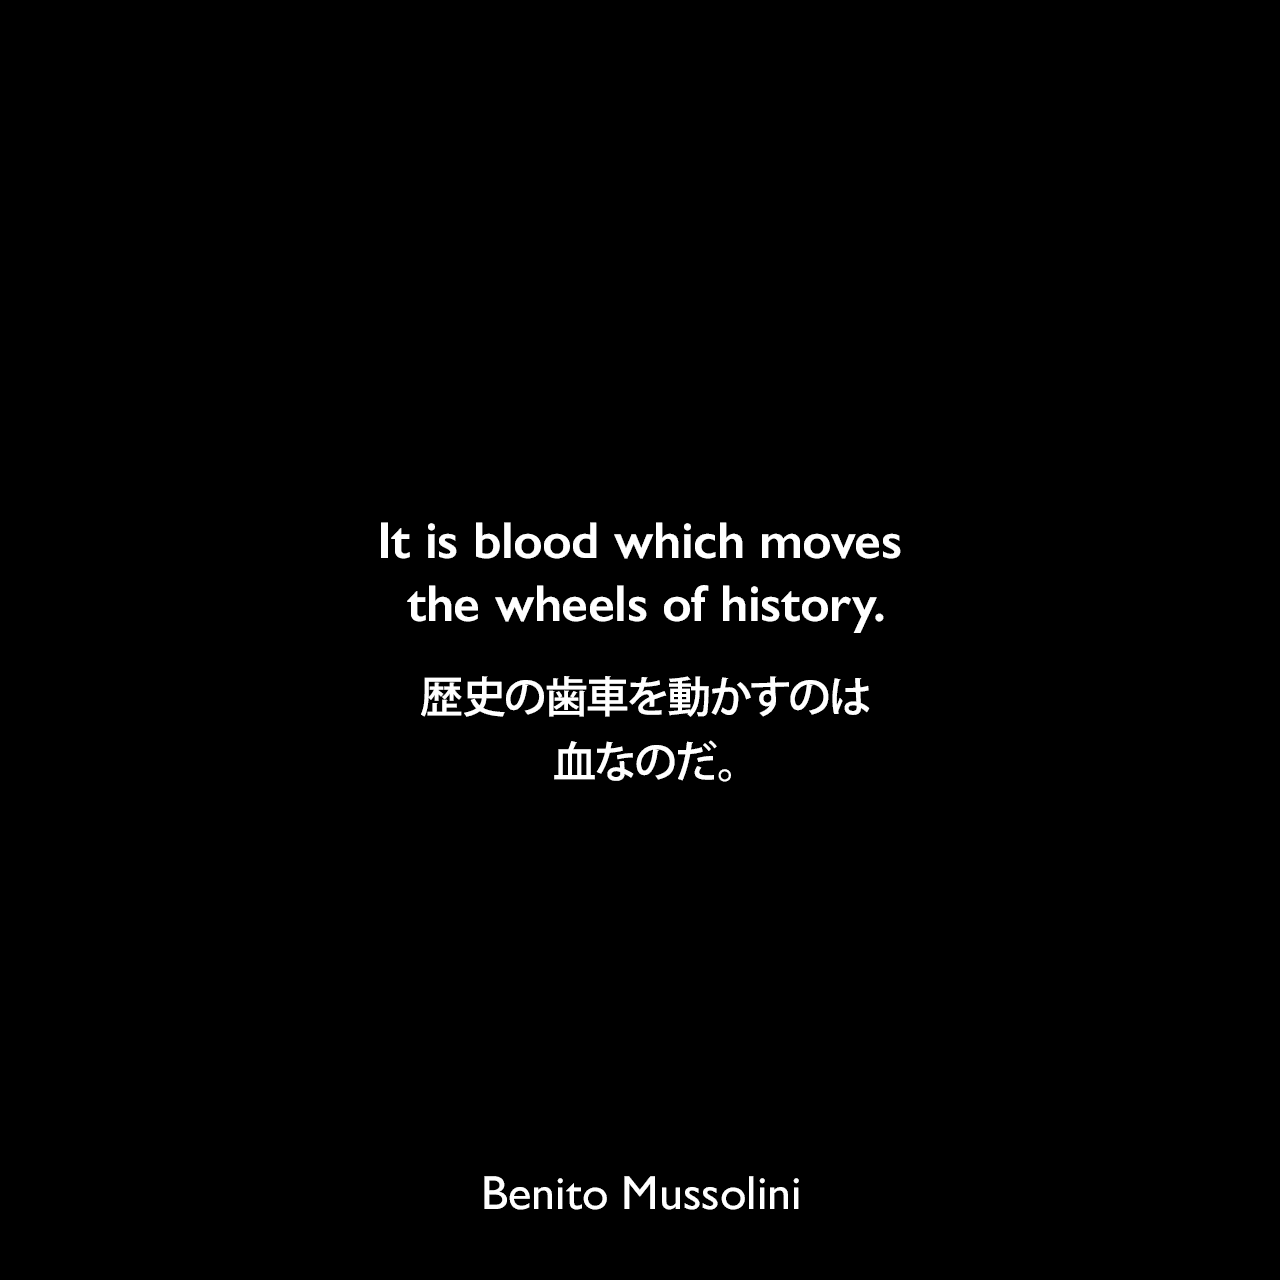 It is blood which moves the wheels of history.歴史の歯車を動かすのは血なのだ。- 1914年12月13日パルマでの演説よりBenito Mussolini